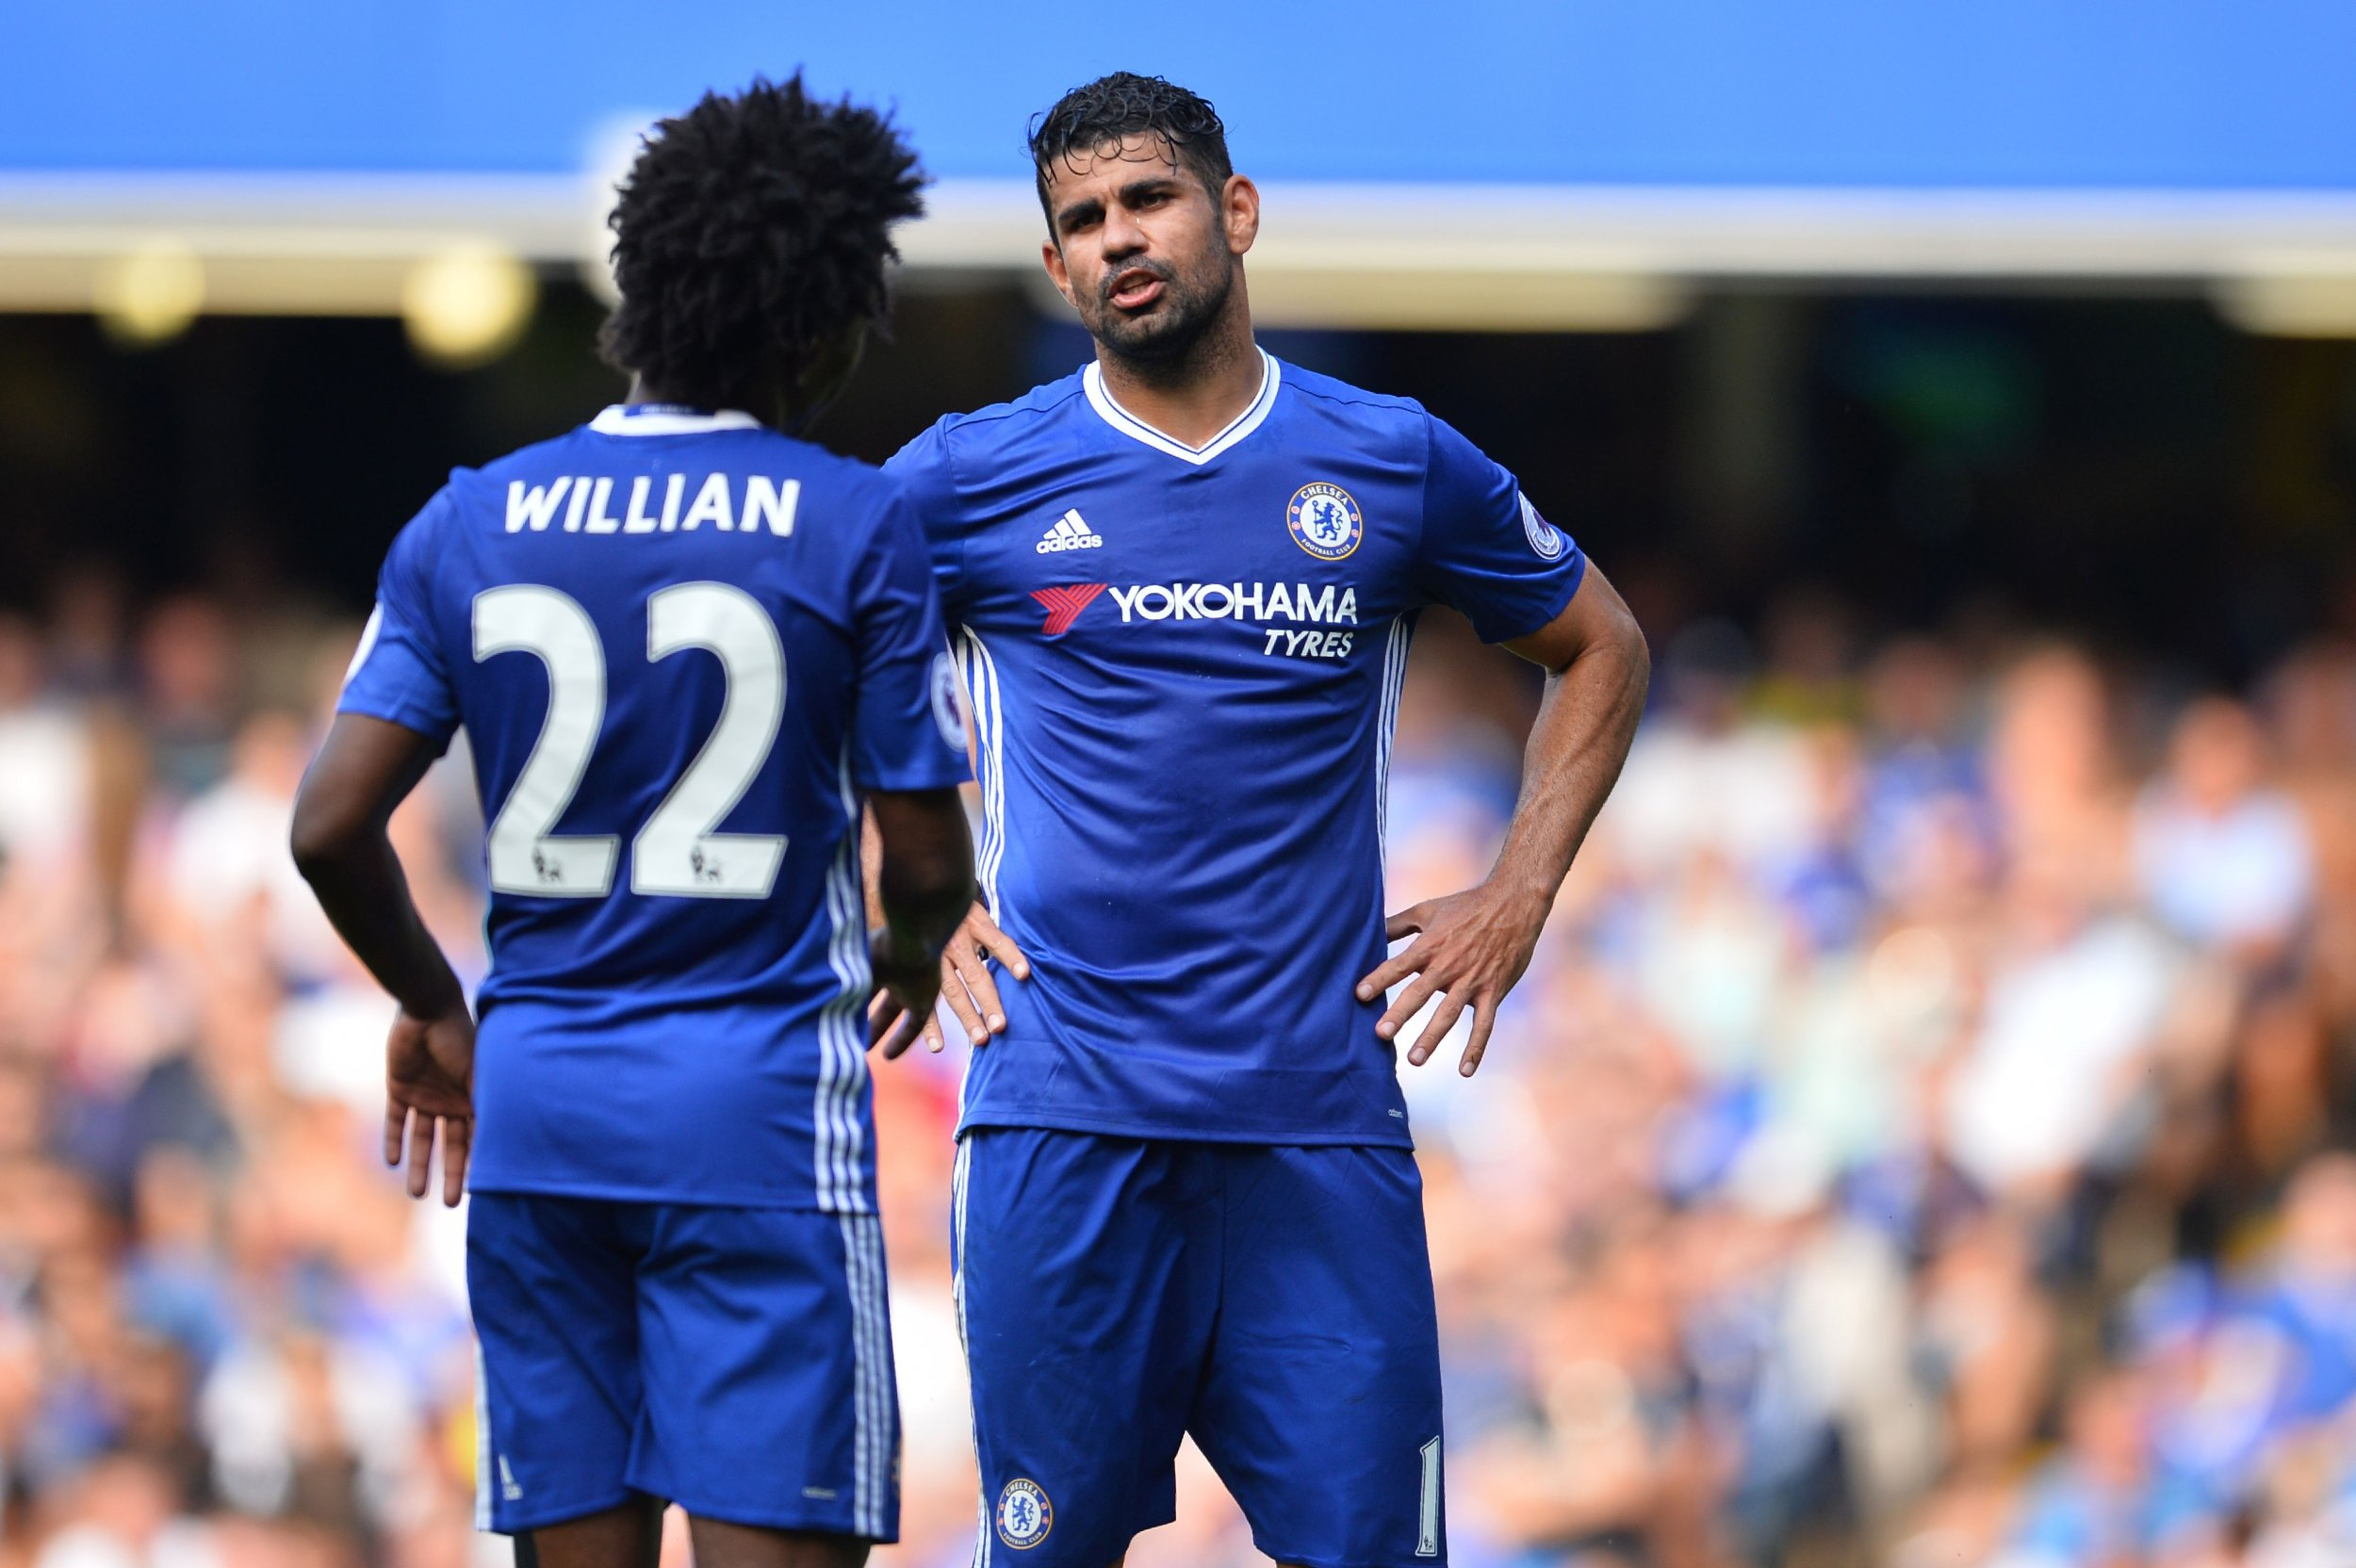 Chelsea Star Opens Up About Situation With Diego Costa and Antonio